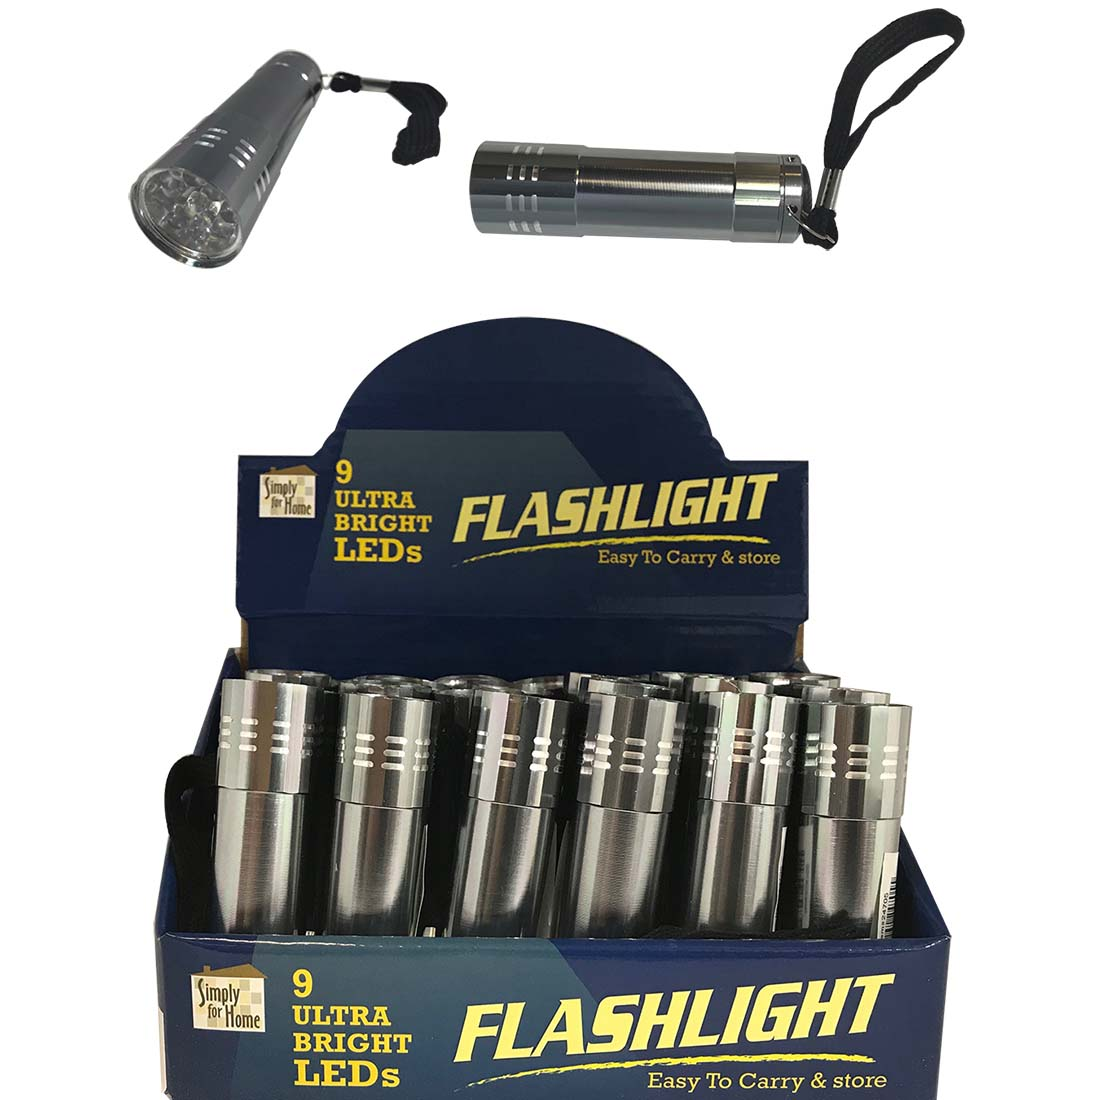 "View 9 LED FLASHLIGHT 3.5 INCH IN DISPLAY ""BATTERIES NOT INCLUDED"""